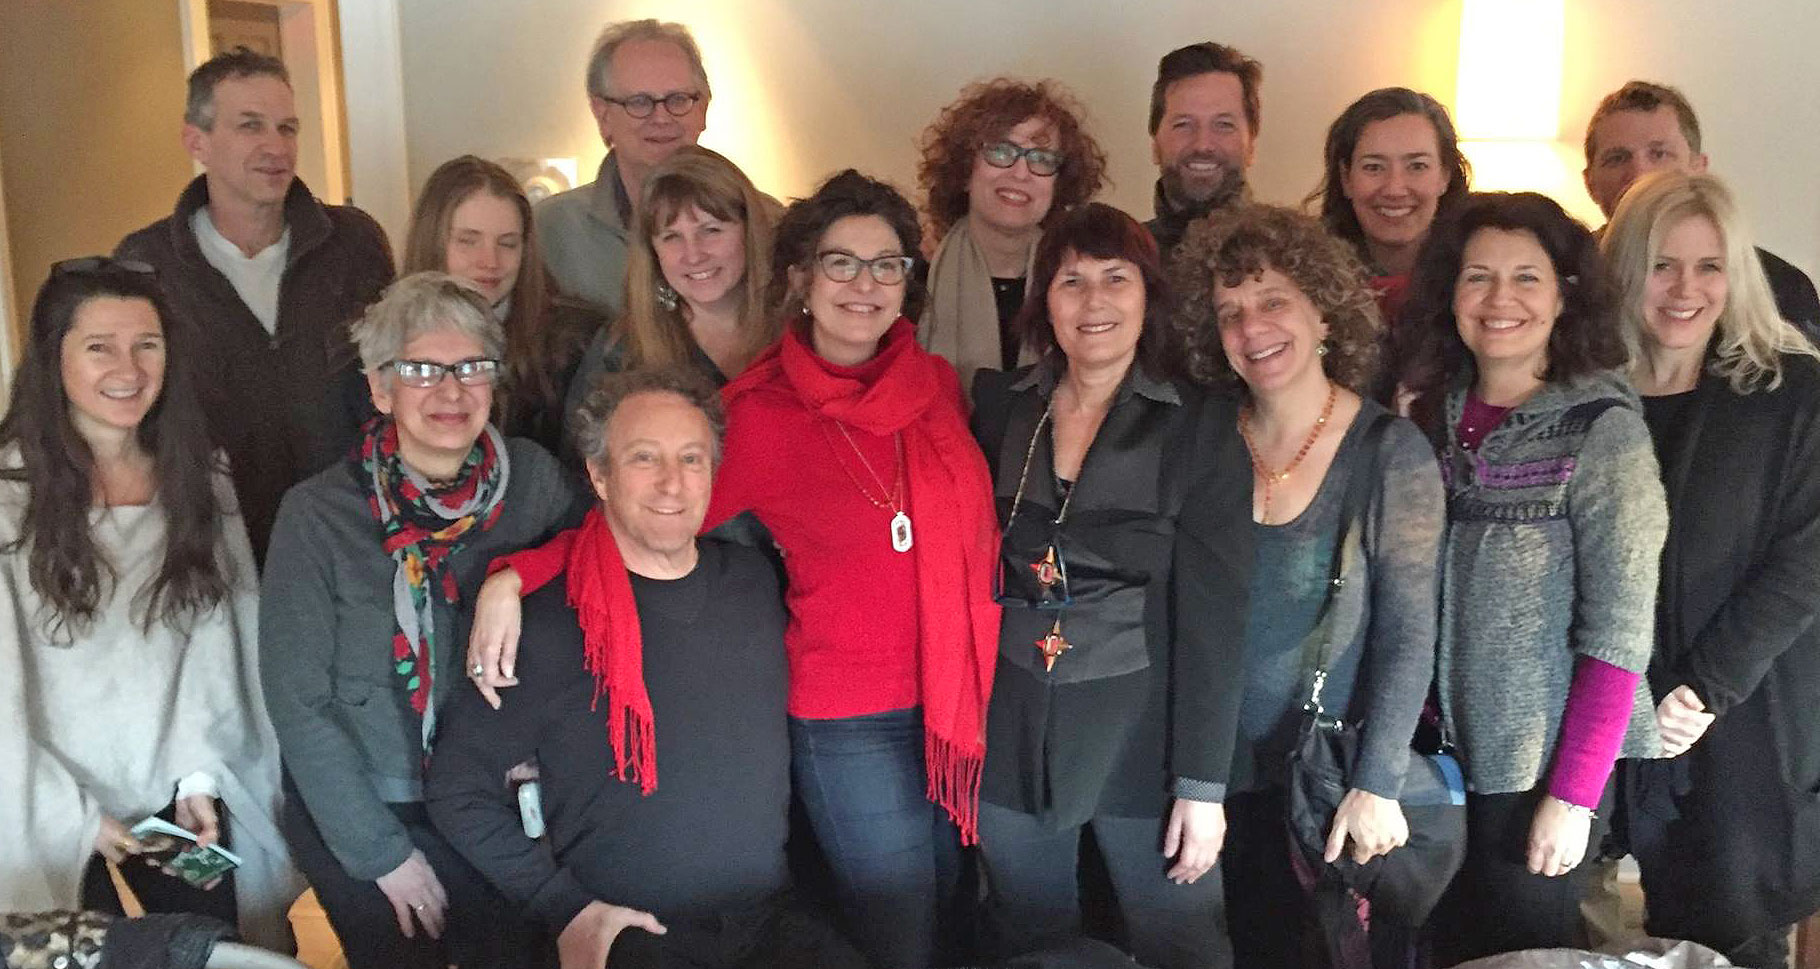 Critically acclaimed filmmaker and award-winning producer  Janet Grillo gathered with friends at  Cucina  following the special screening of JACK OF THE RED HEARTS in Woodstock.